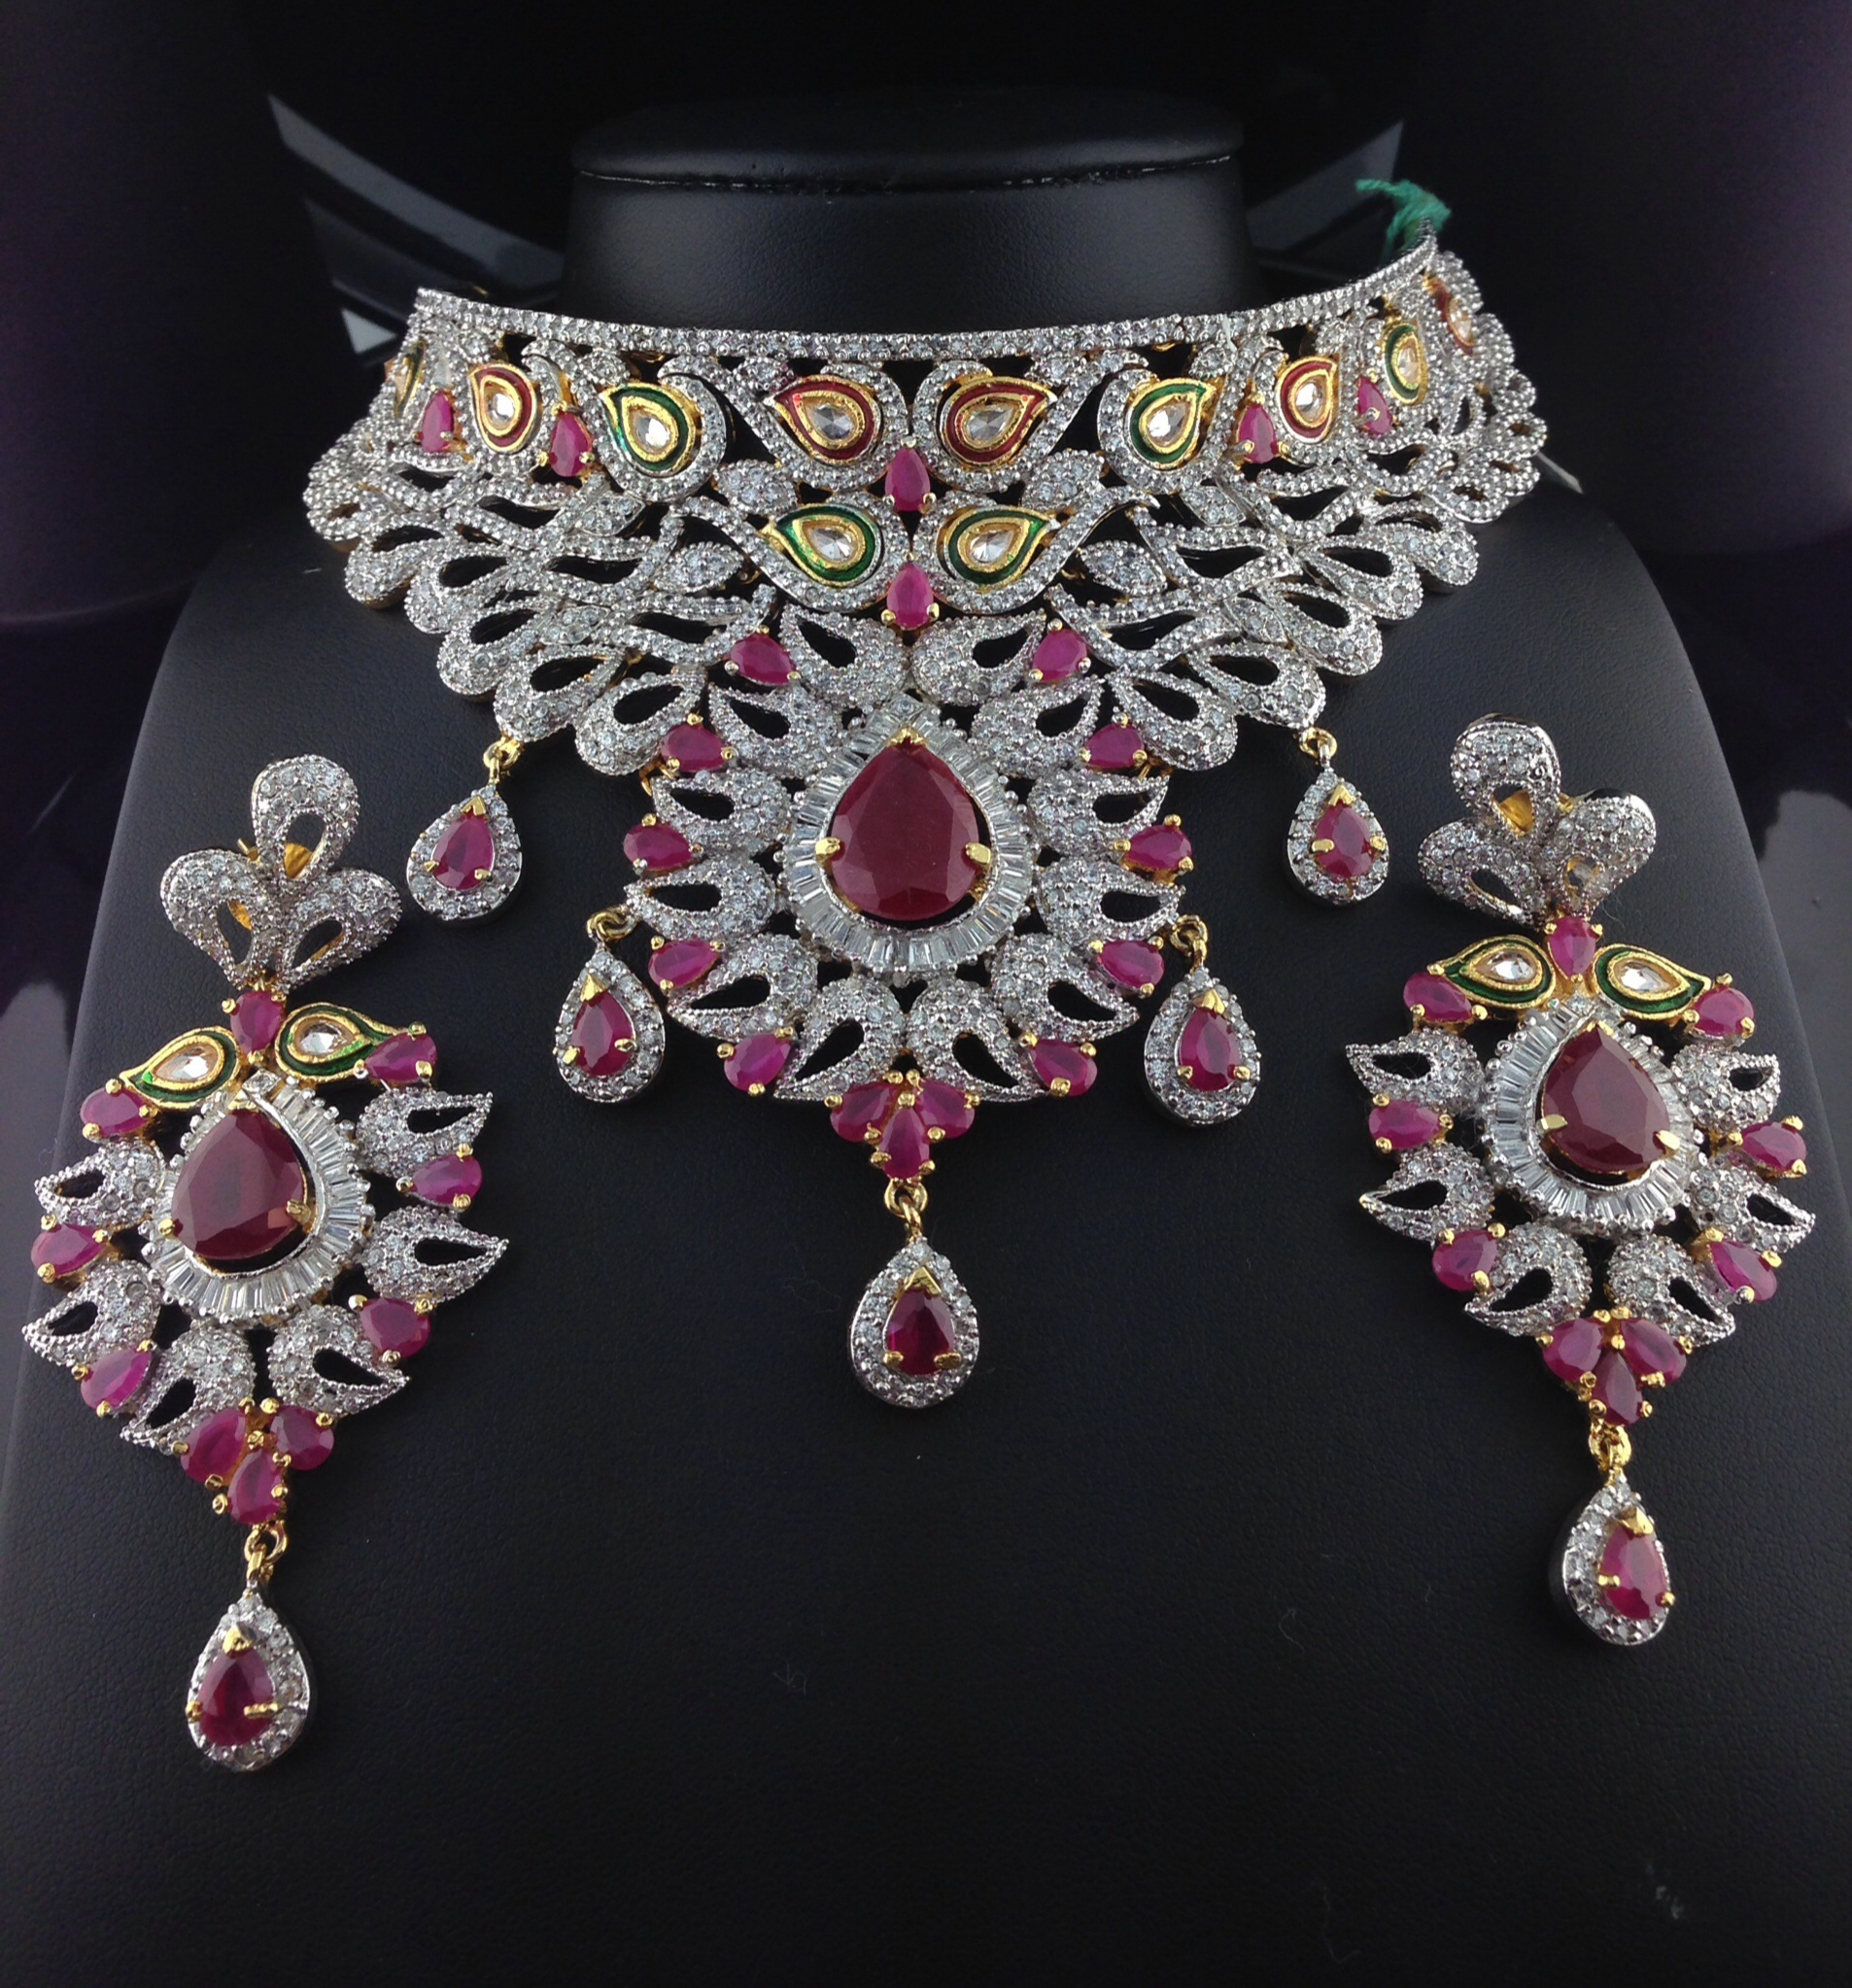 Stunning American Diamond Bridal Set With Polki Cut Rubies.